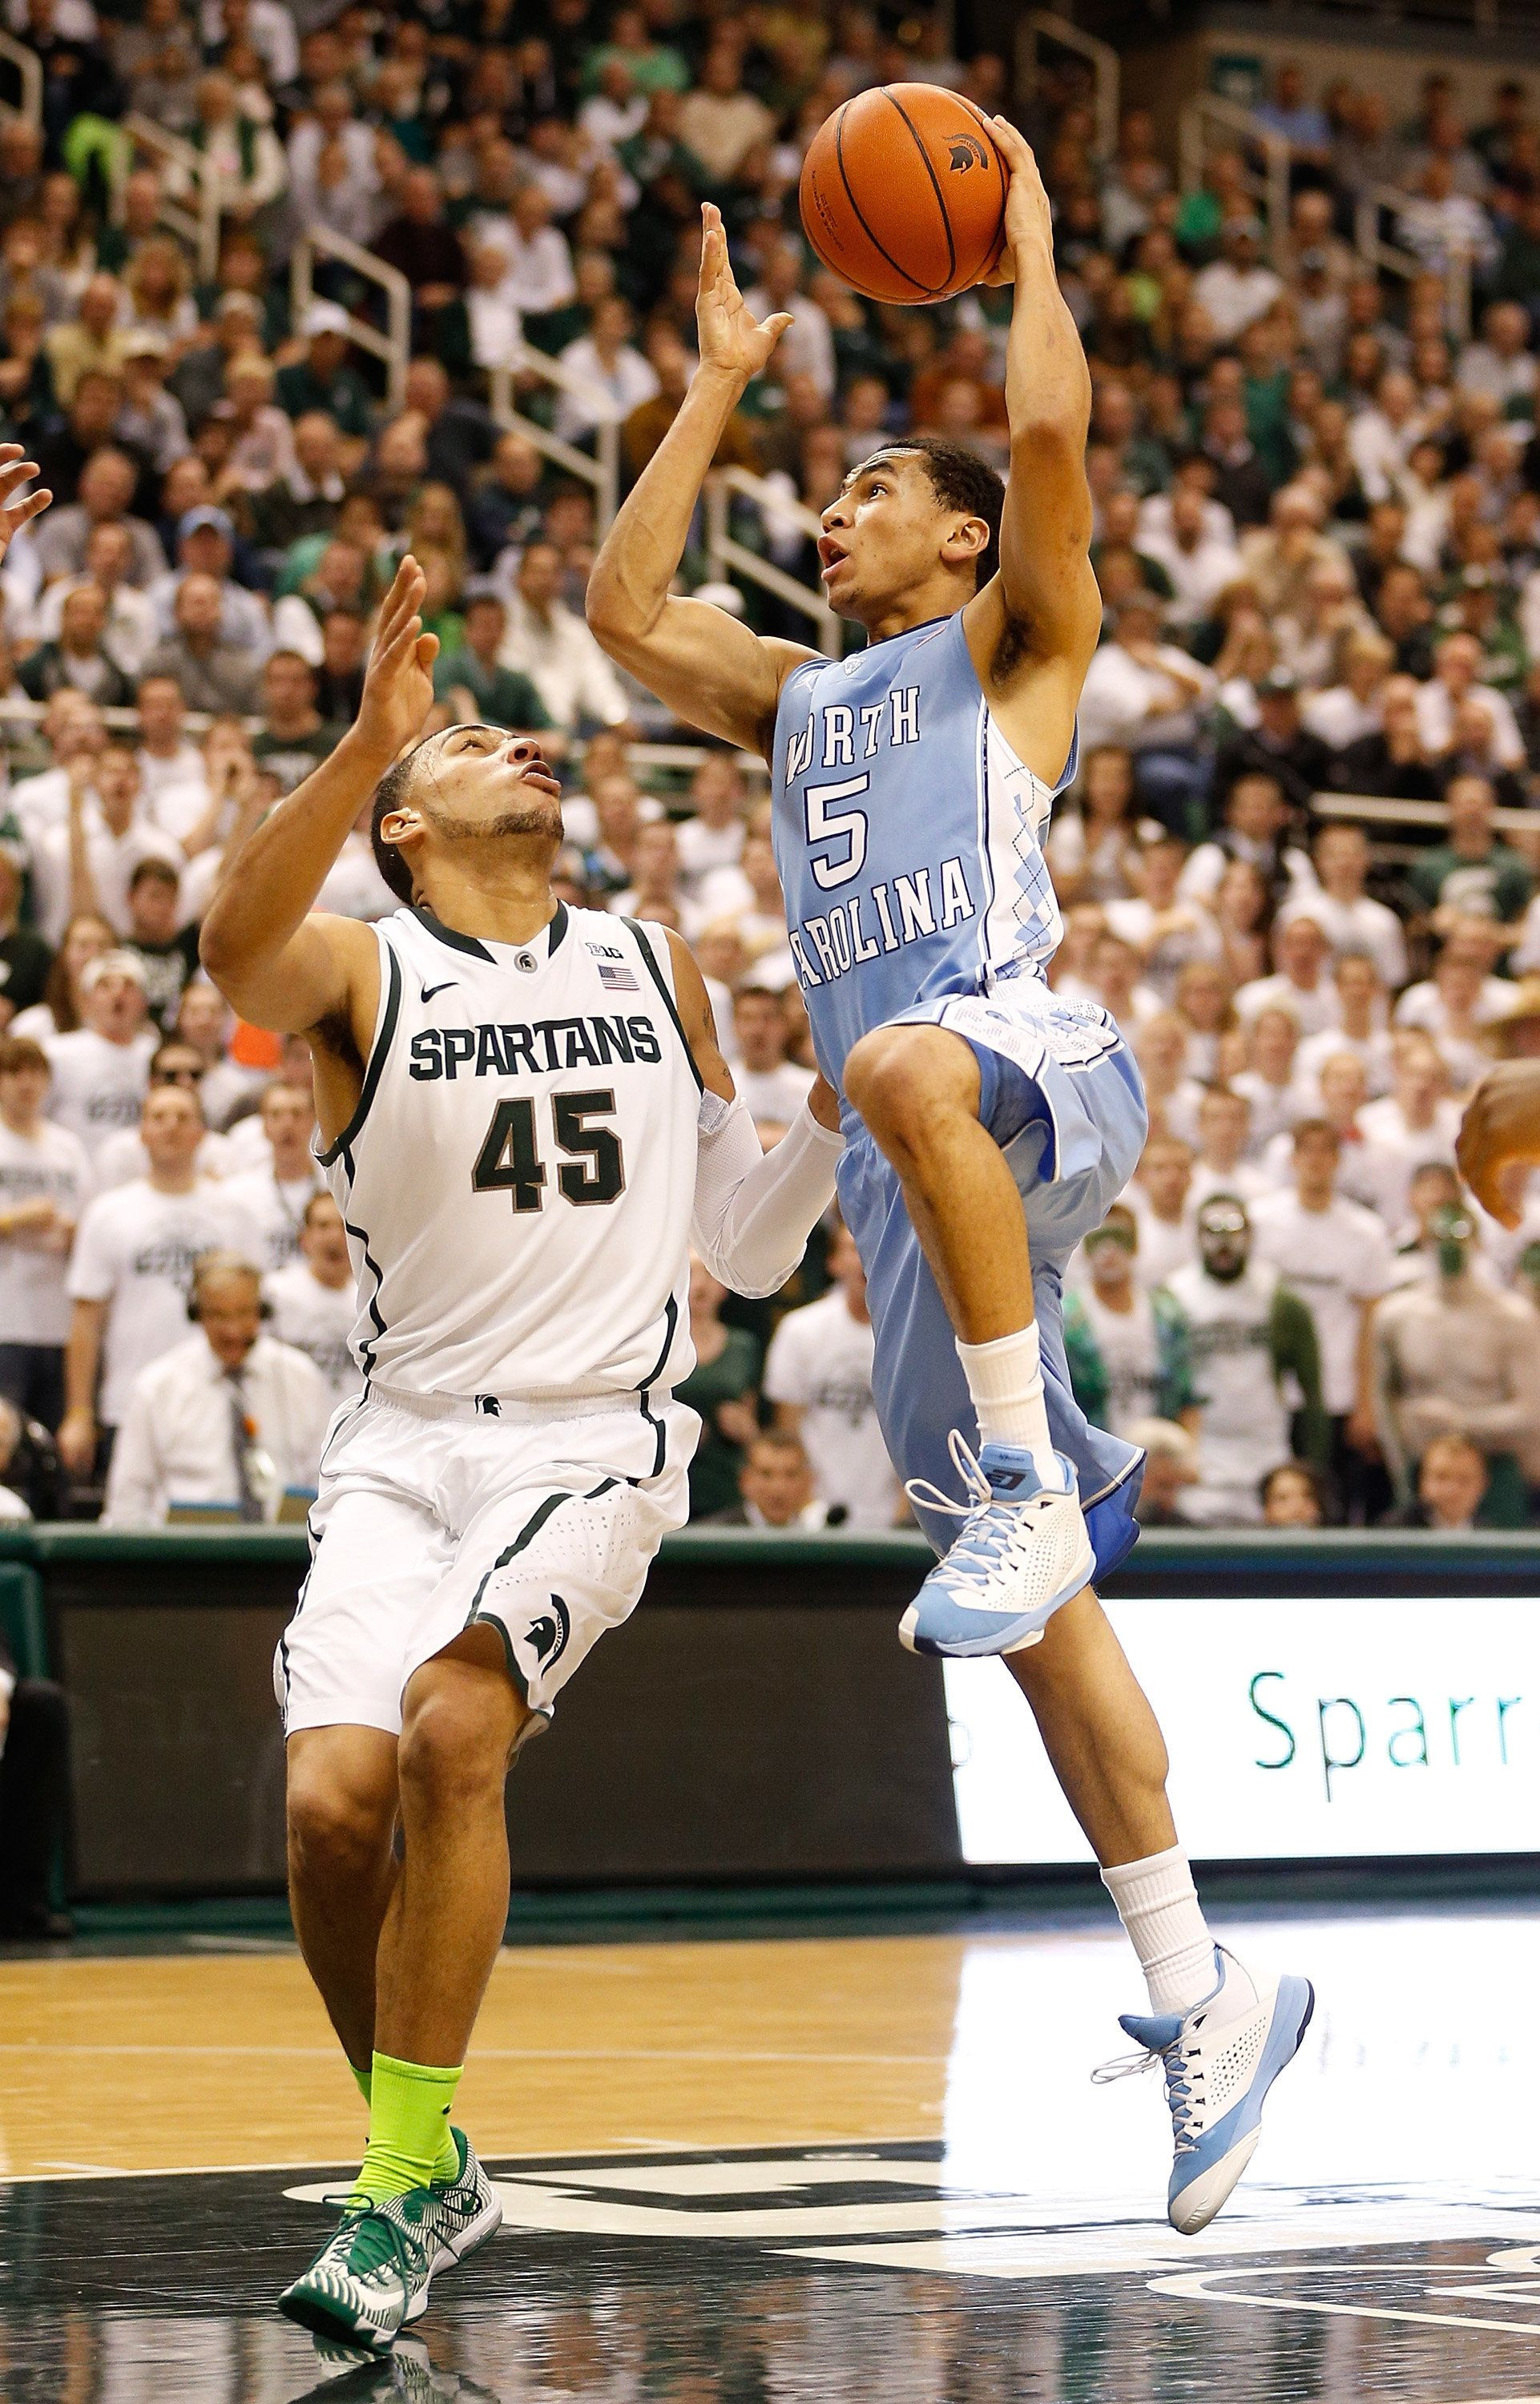 EAST LANSING, MI - DECEMBER 04:  Marcus Paige #5 of the North Carolina Tar Heels tries to get to the basket past Denzel Valentine #45 of the Michigan State Spartans during the first half at the Jack T. Breslin Student Events Center on December 4, 2013 in East Lansing, Michigan. (Photo by Gregory Shamus/Getty Images)